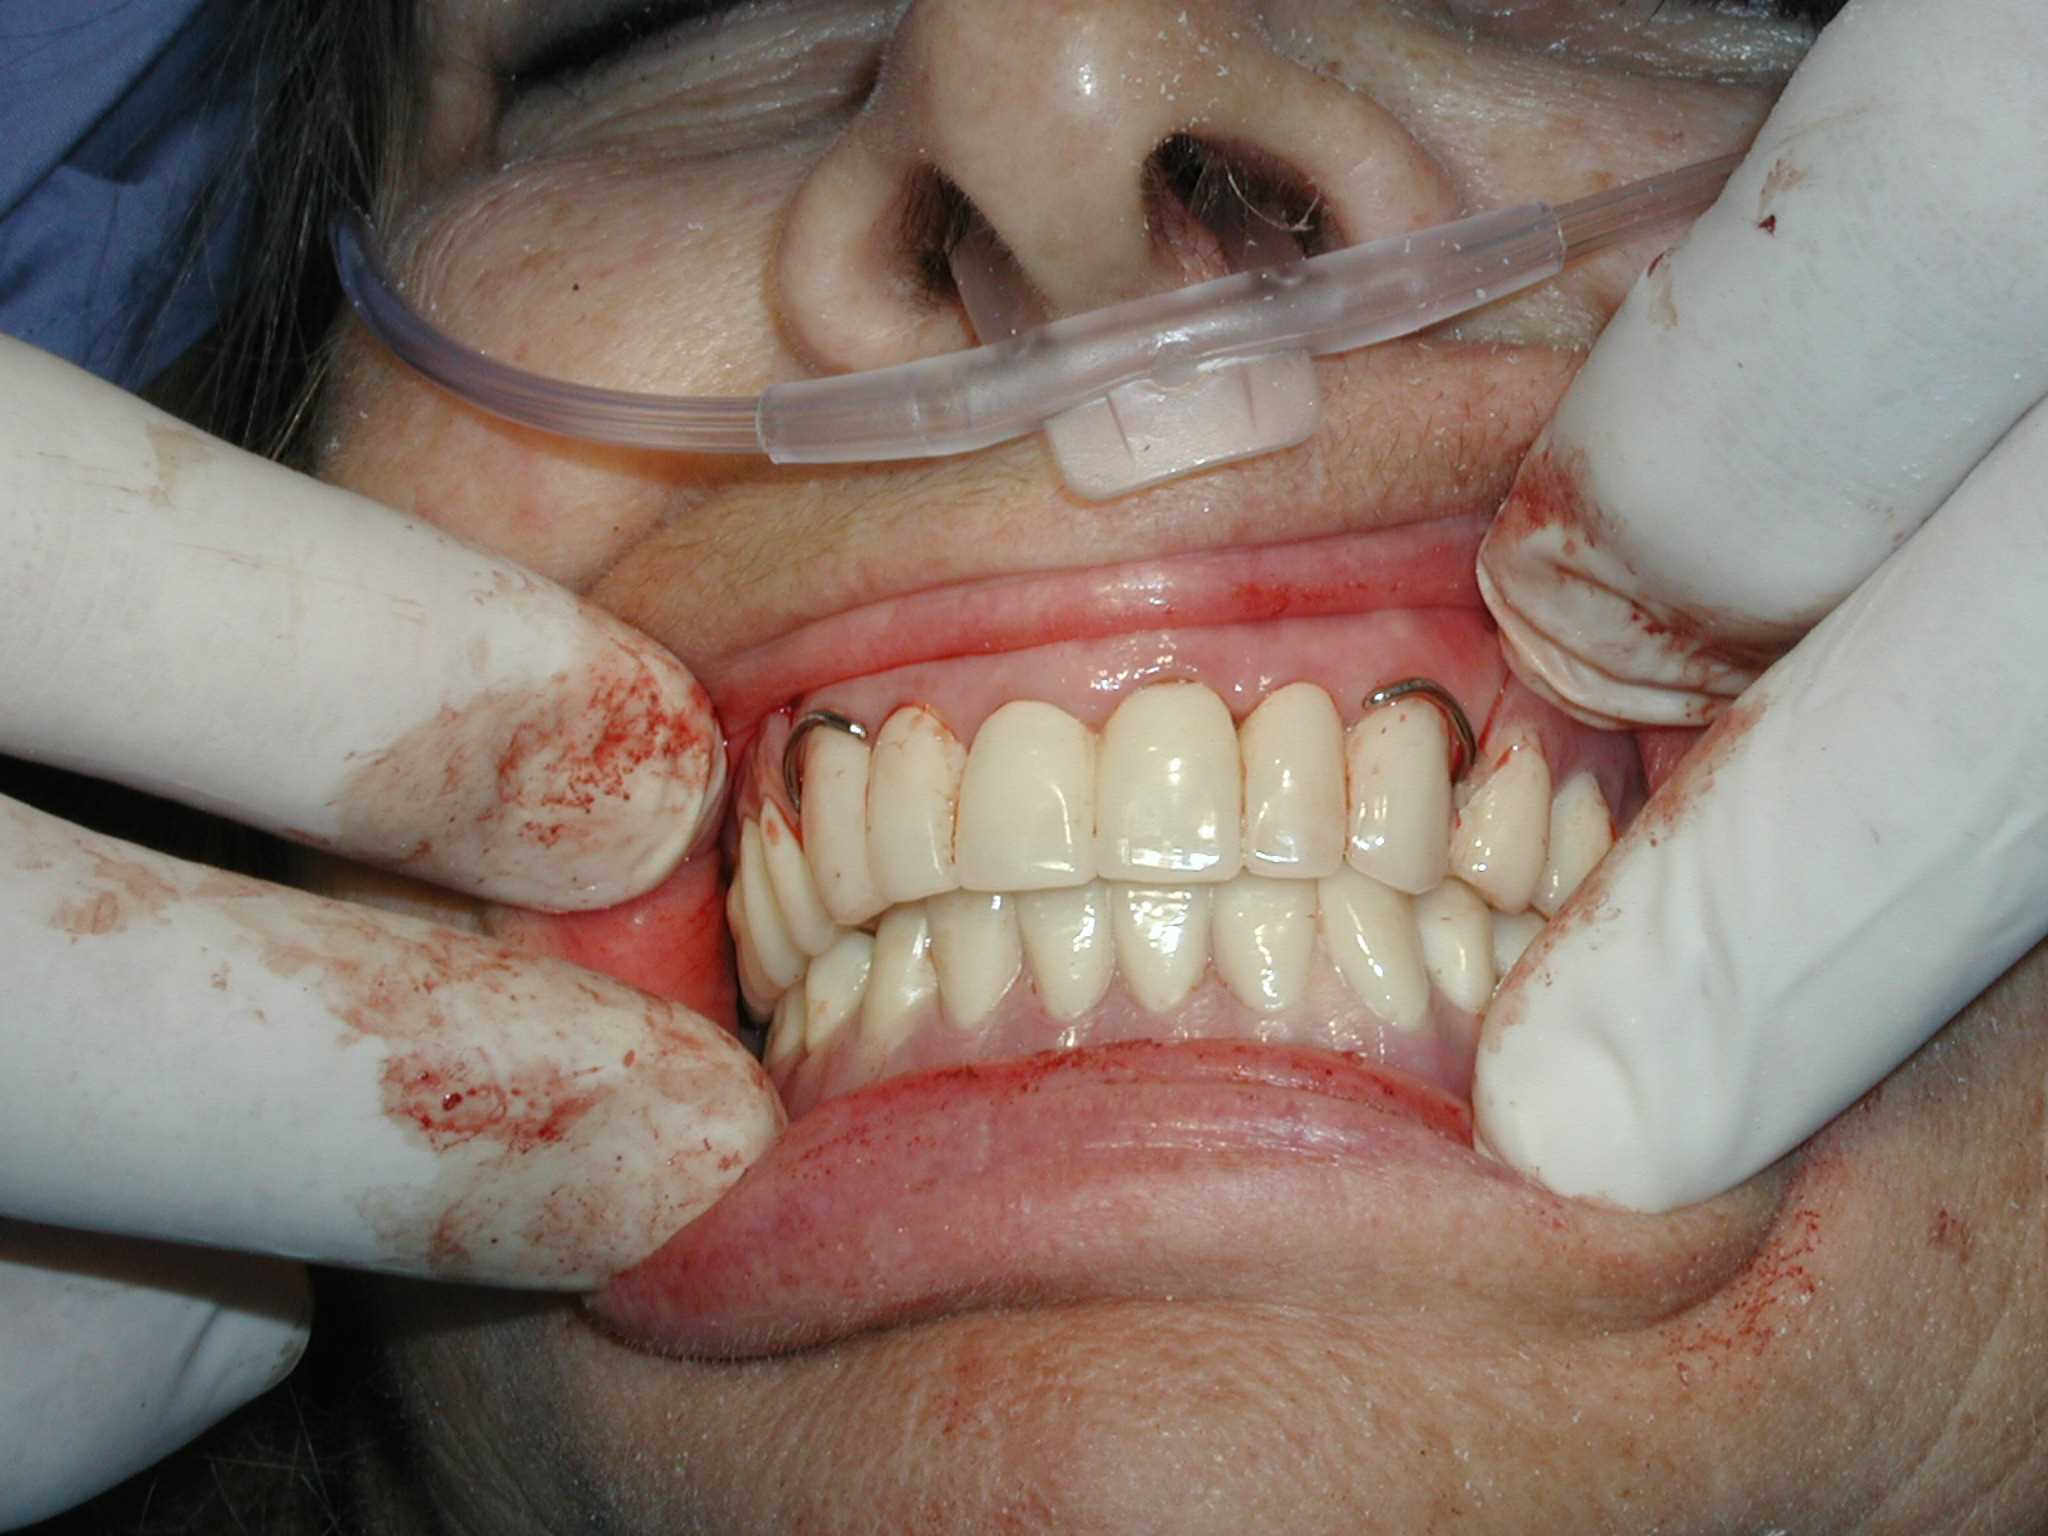 Top Partial Dentures Images for Pinterest Tattoos